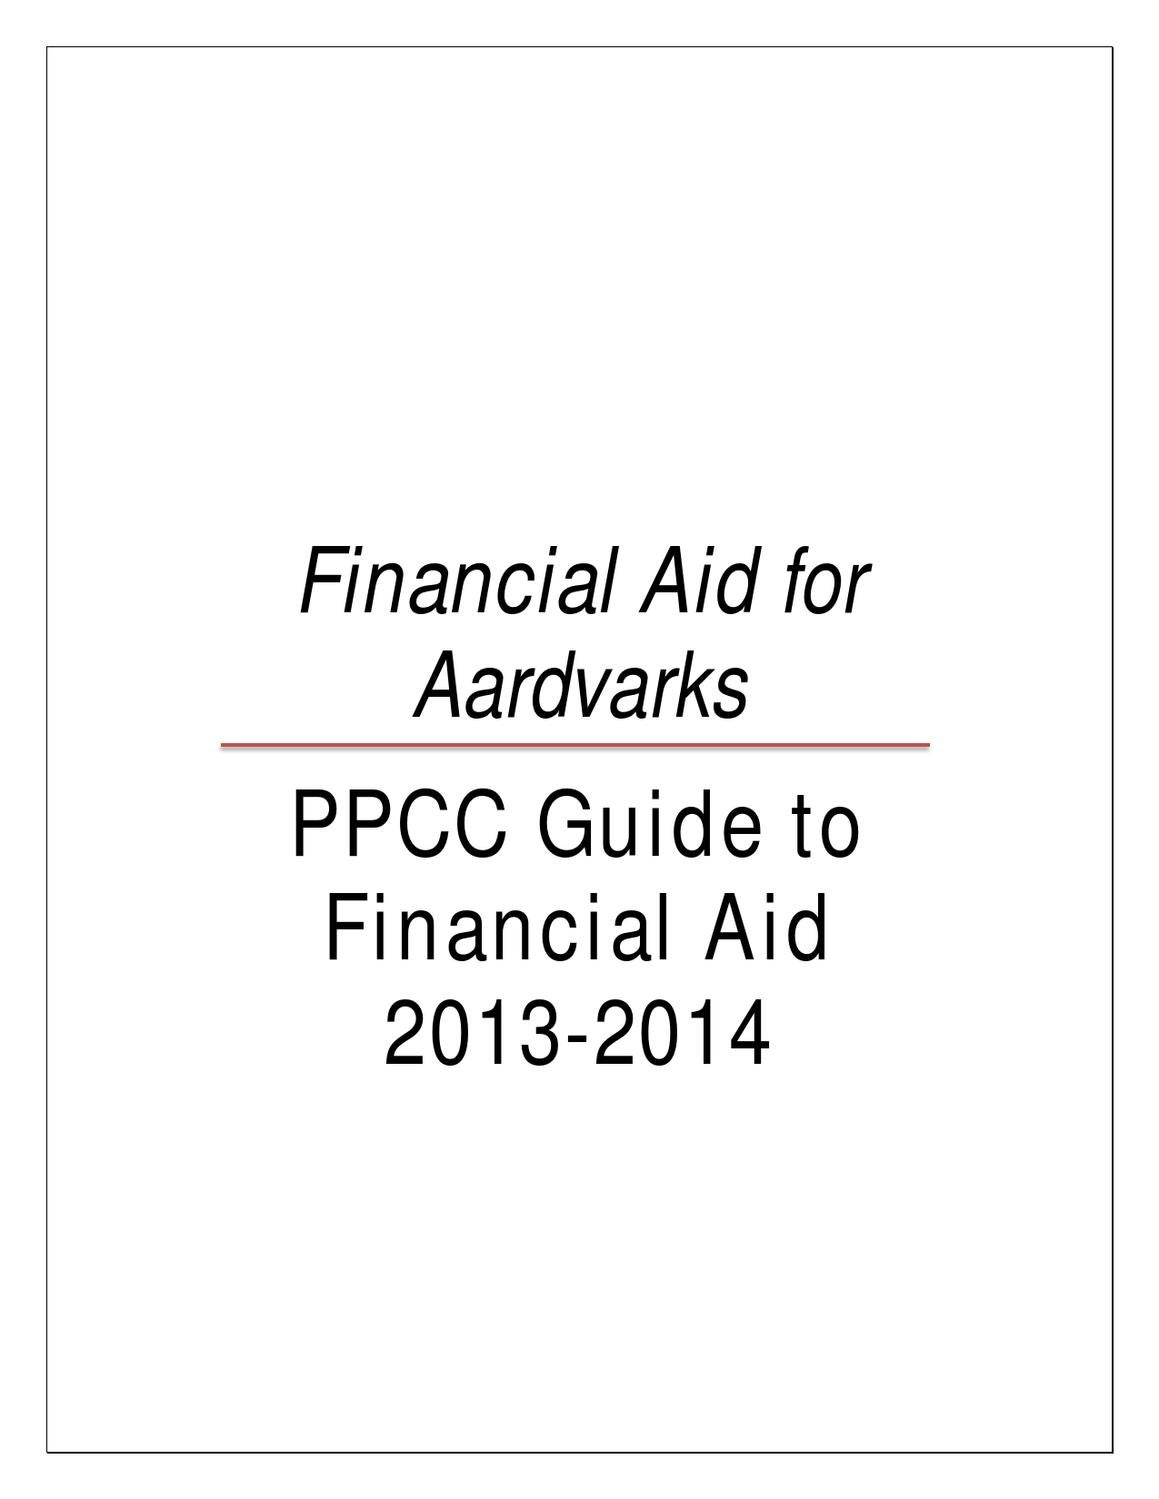 PPCC Guide to Financial Aid by Pikes Peak Community